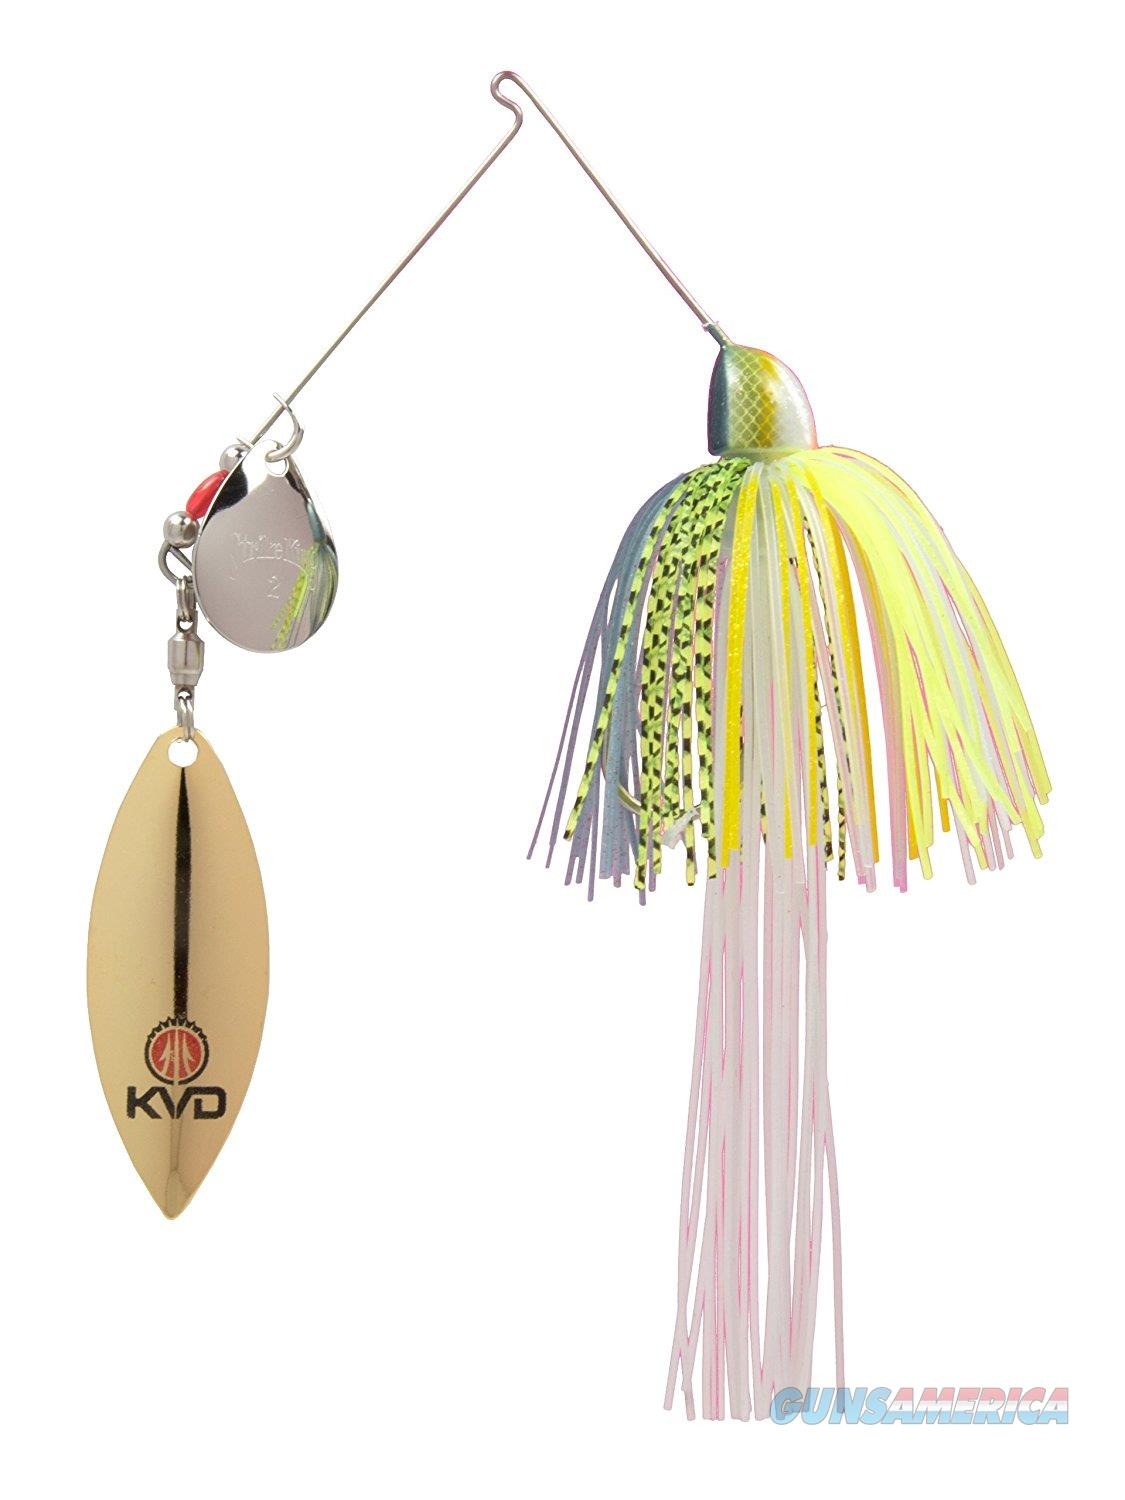 Strike King KVD Spinnerbait Sexy Shad  Non-Guns > Fishing/Spearfishing